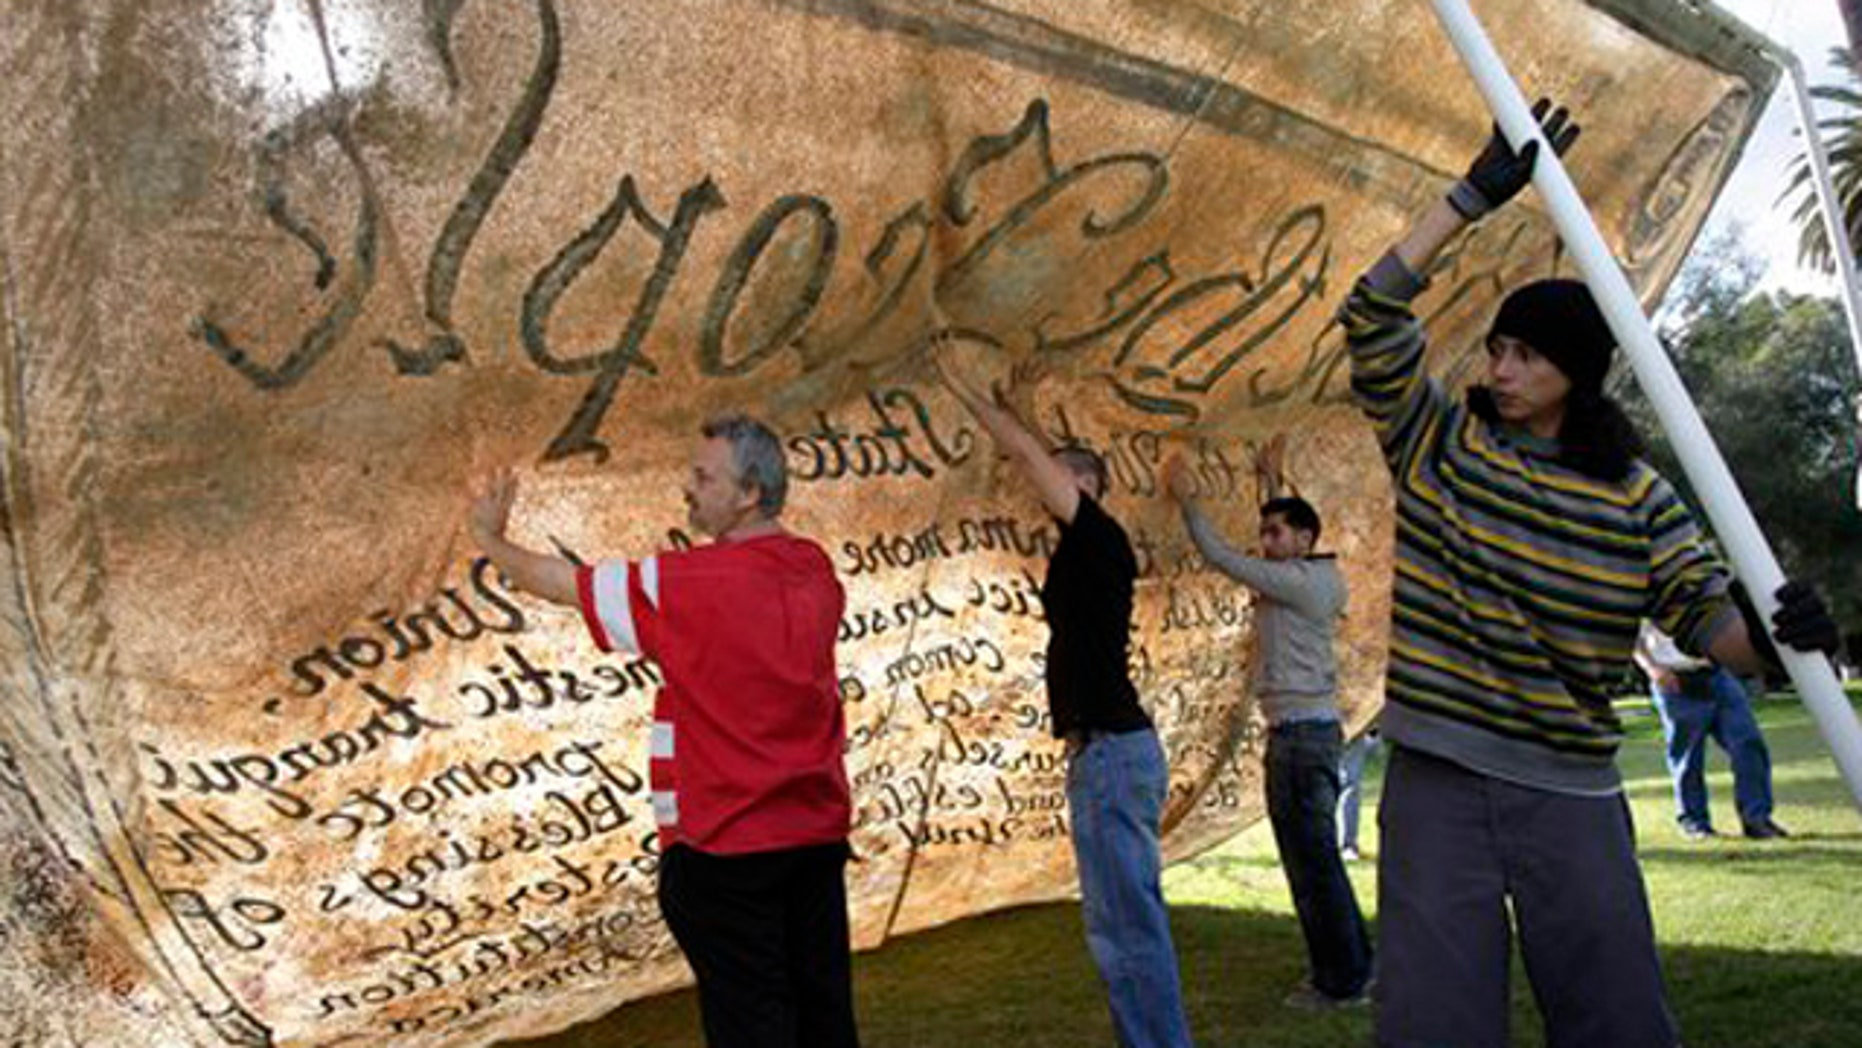 December 29, 2011: Occupy activists test a float made with a copy of the Constitution in Pasadena, Calif.